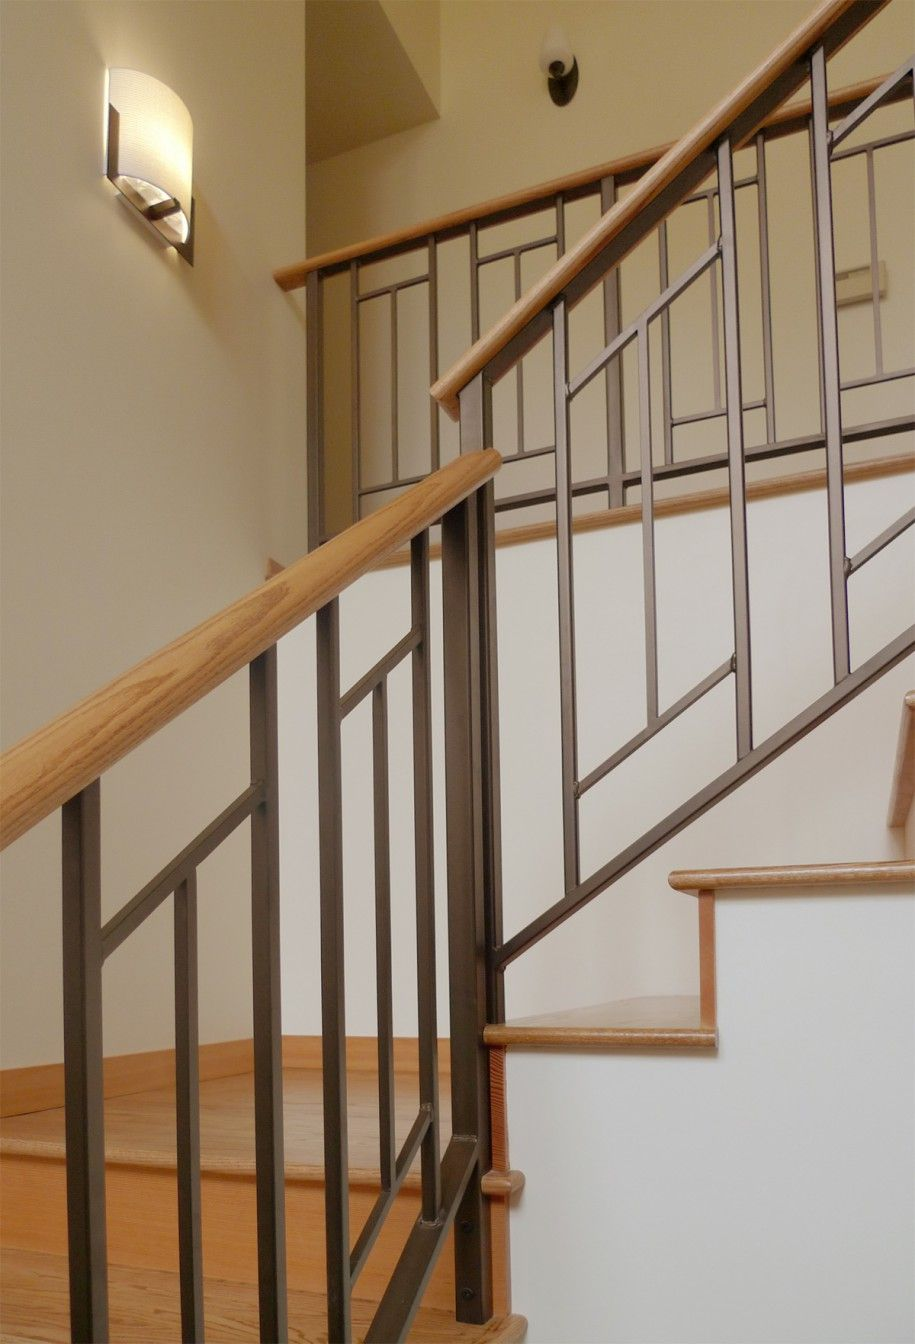 Wall Railings Designs iron balcony railings designs iron balcony railings designs suppliers and manufacturers at alibabacom Furniture Simple And Sleek Contemporary Staircase Railings With Nice Designs From Metal And Wood Materials